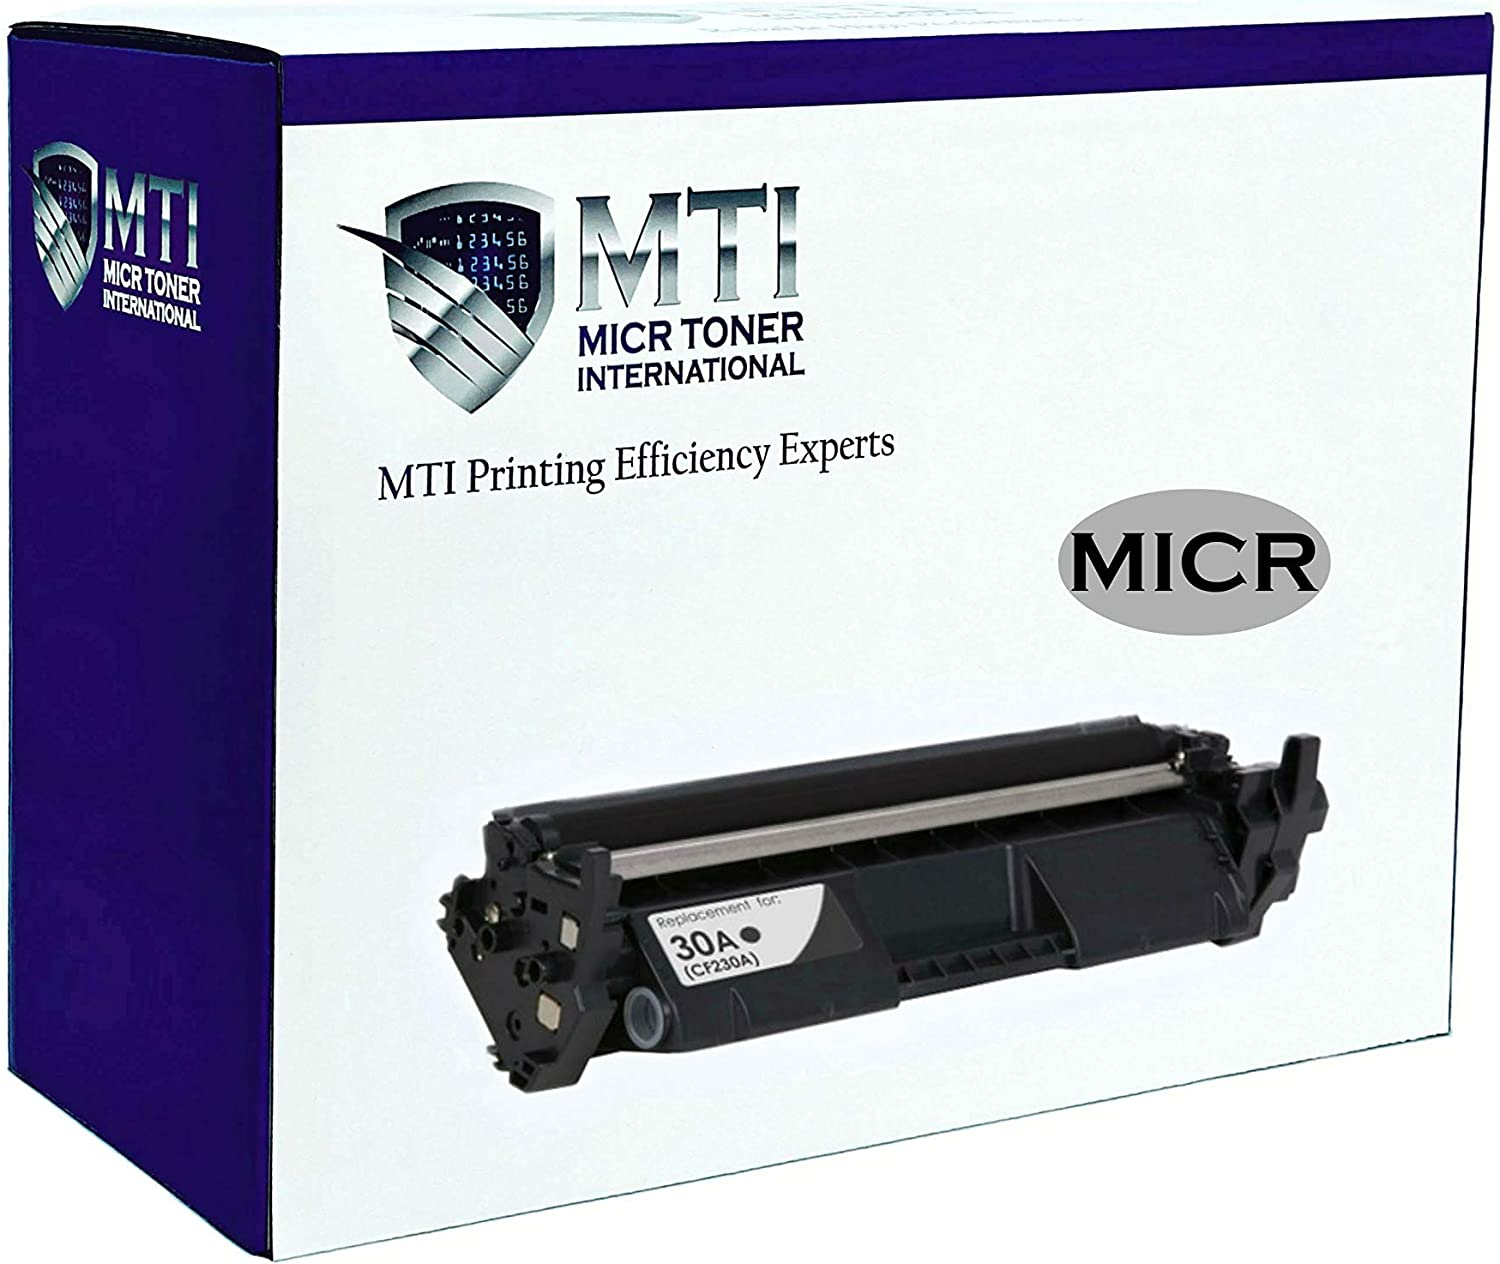 MICR Toner International Compatible Magnetic Ink Cartridge Replacement for HP 30A CF230A Laserjet M203 M227